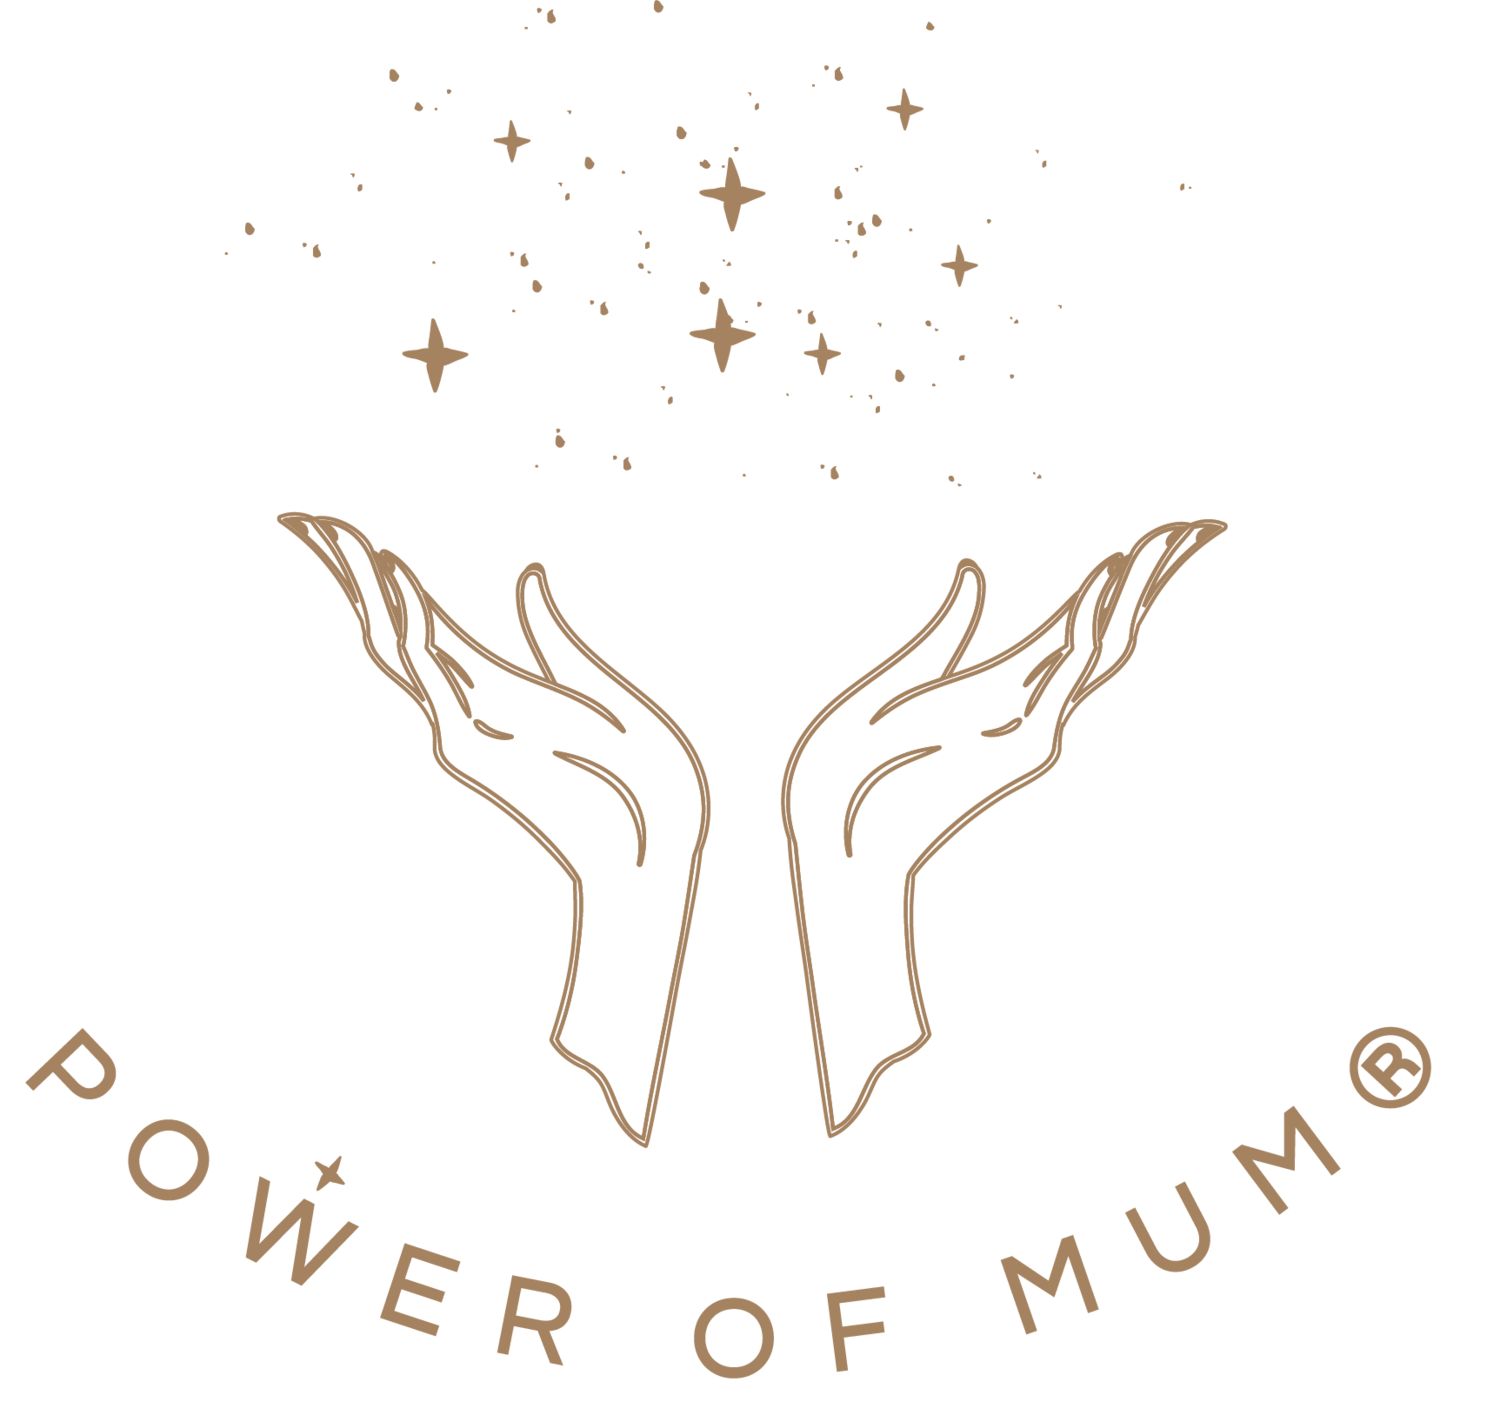 Power of Mum®